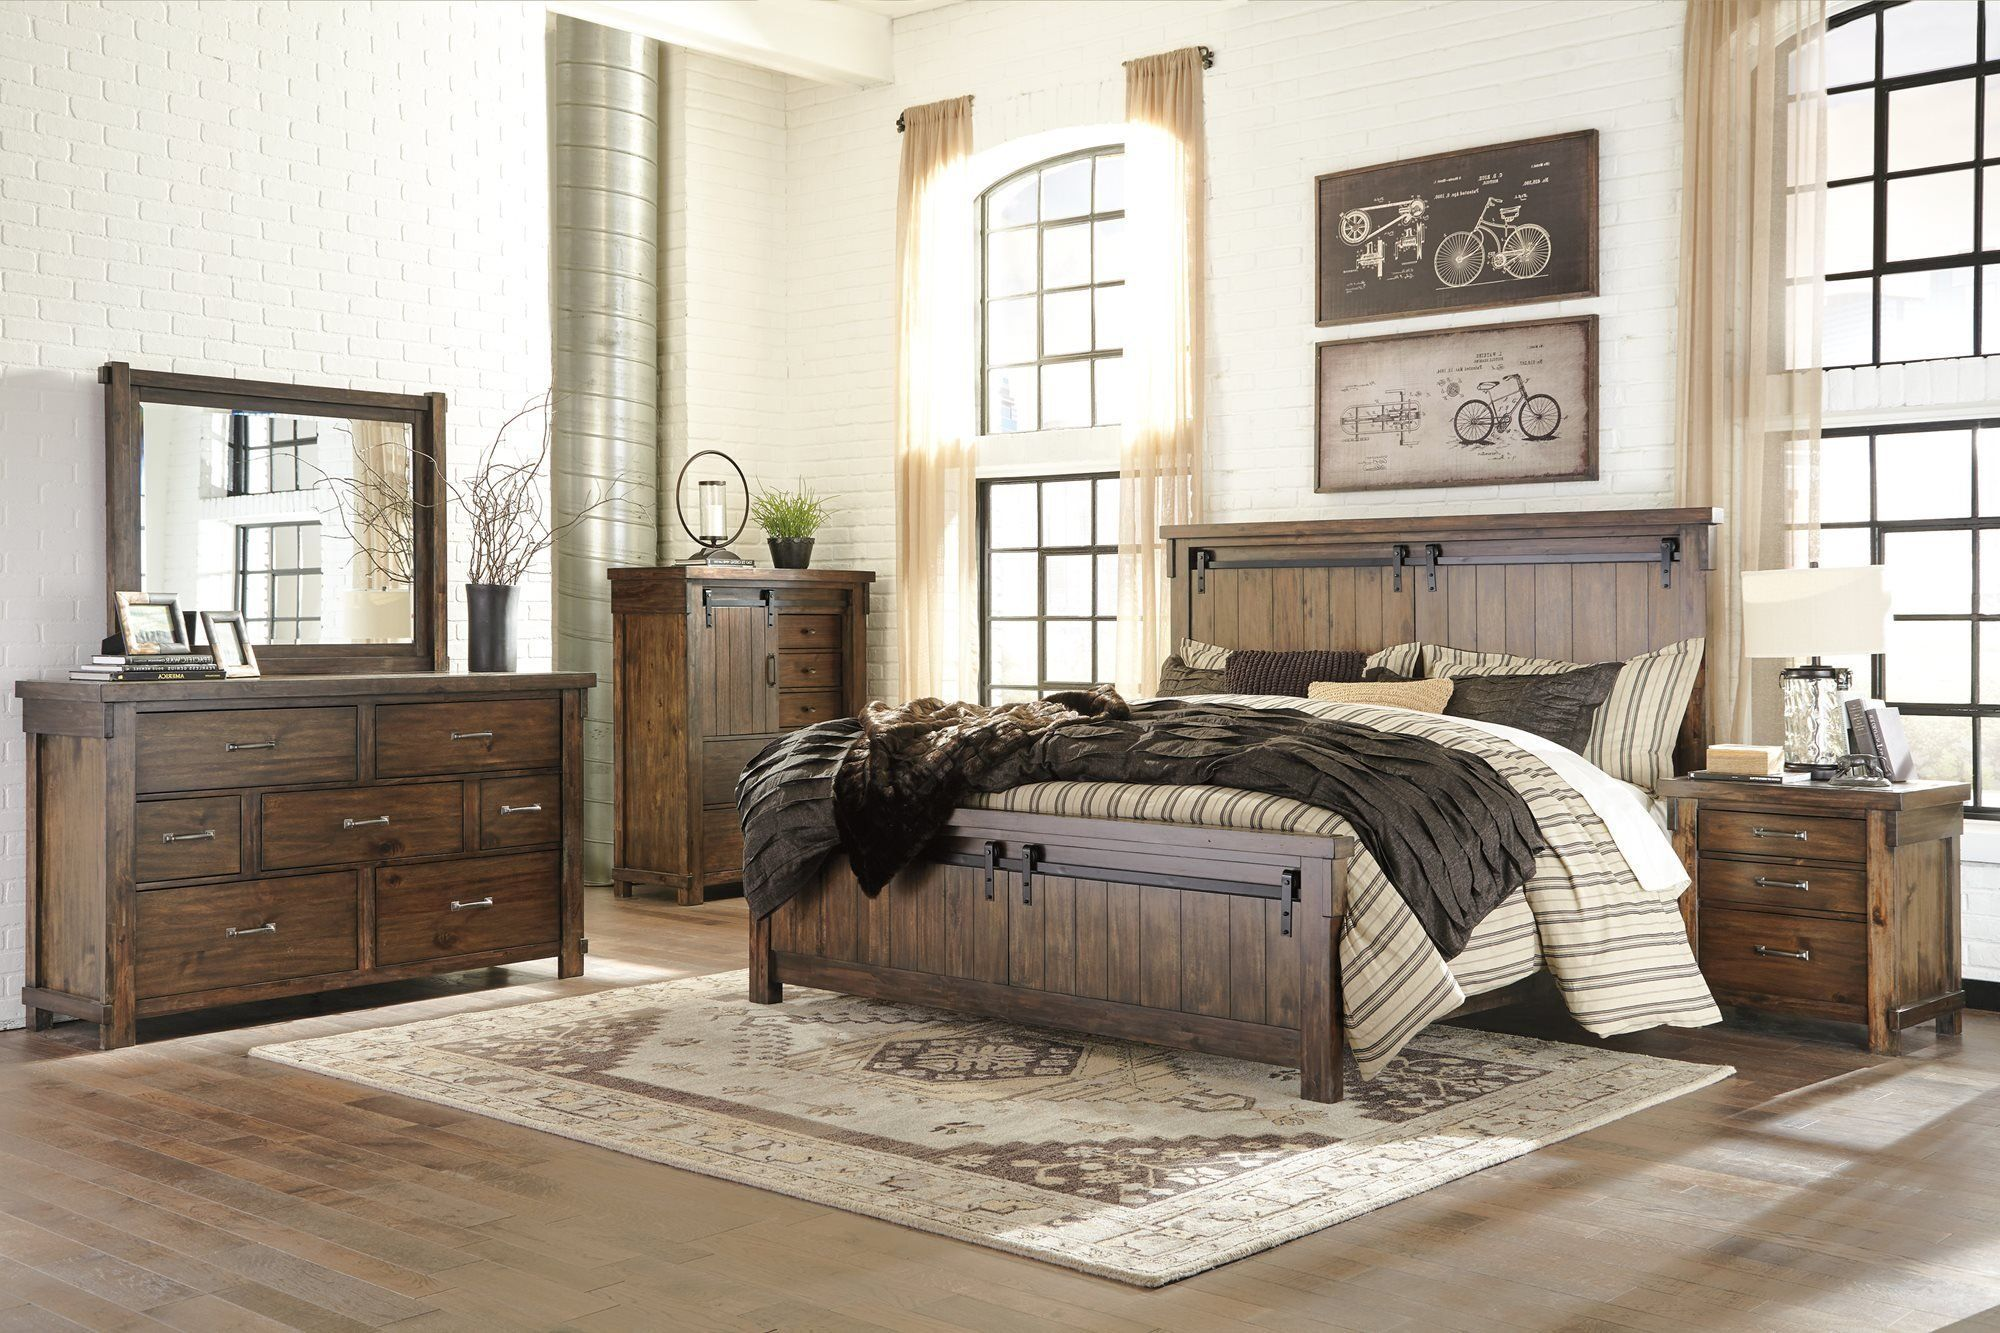 Ashley lakeleigh pc bedroom set e king panel bed dresser mirror two